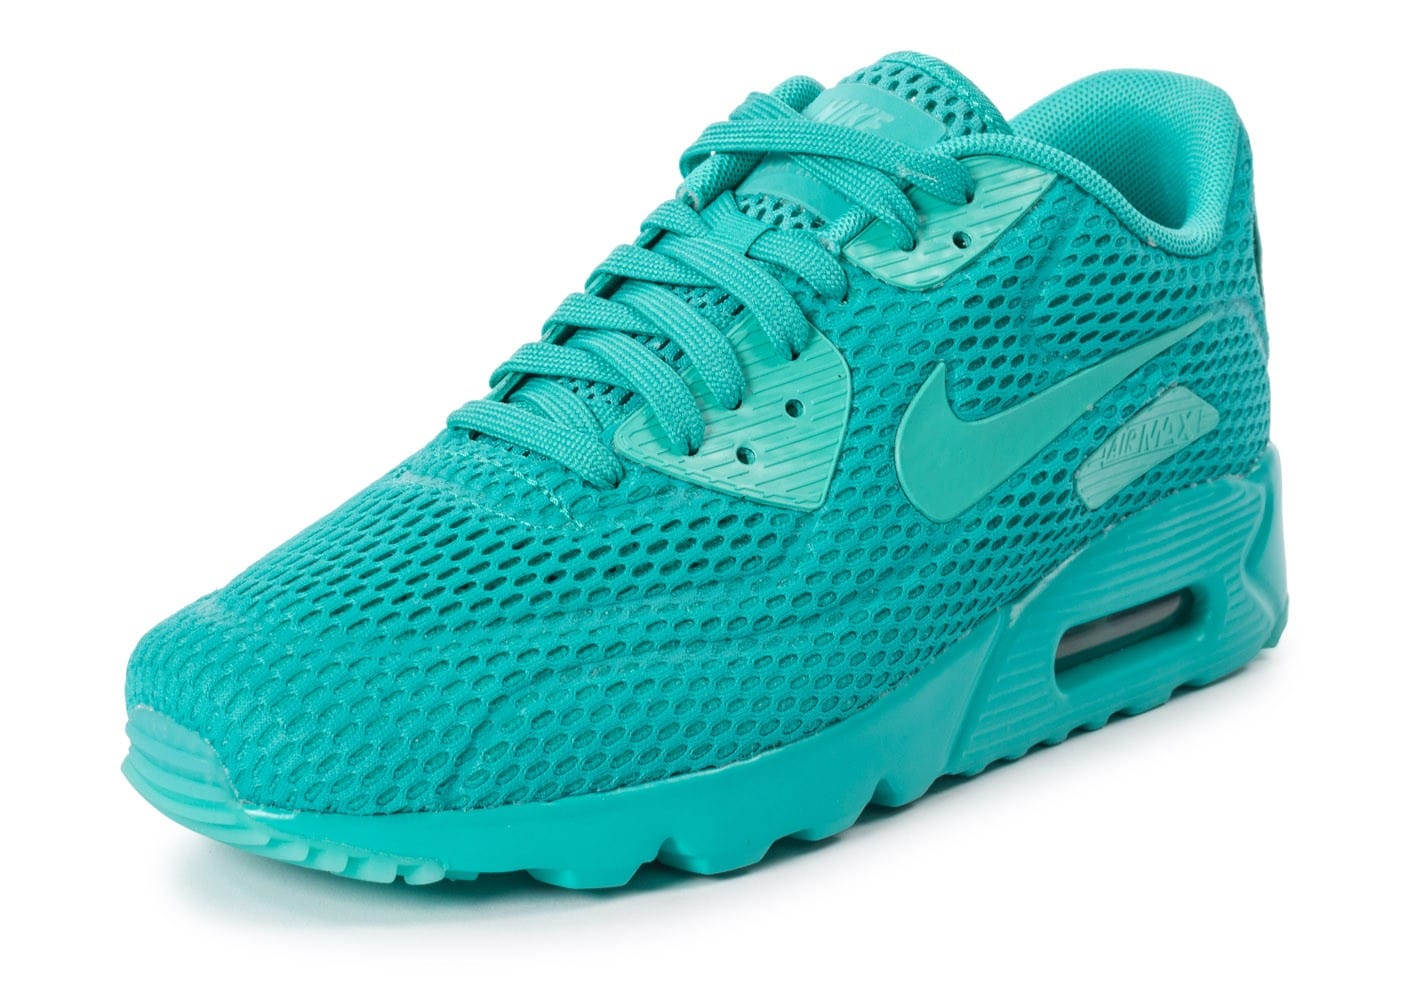 separation shoes 895c2 18839 ... Chaussures Nike Air Max 90 Ultra BR Hyper Jade vue avant ...